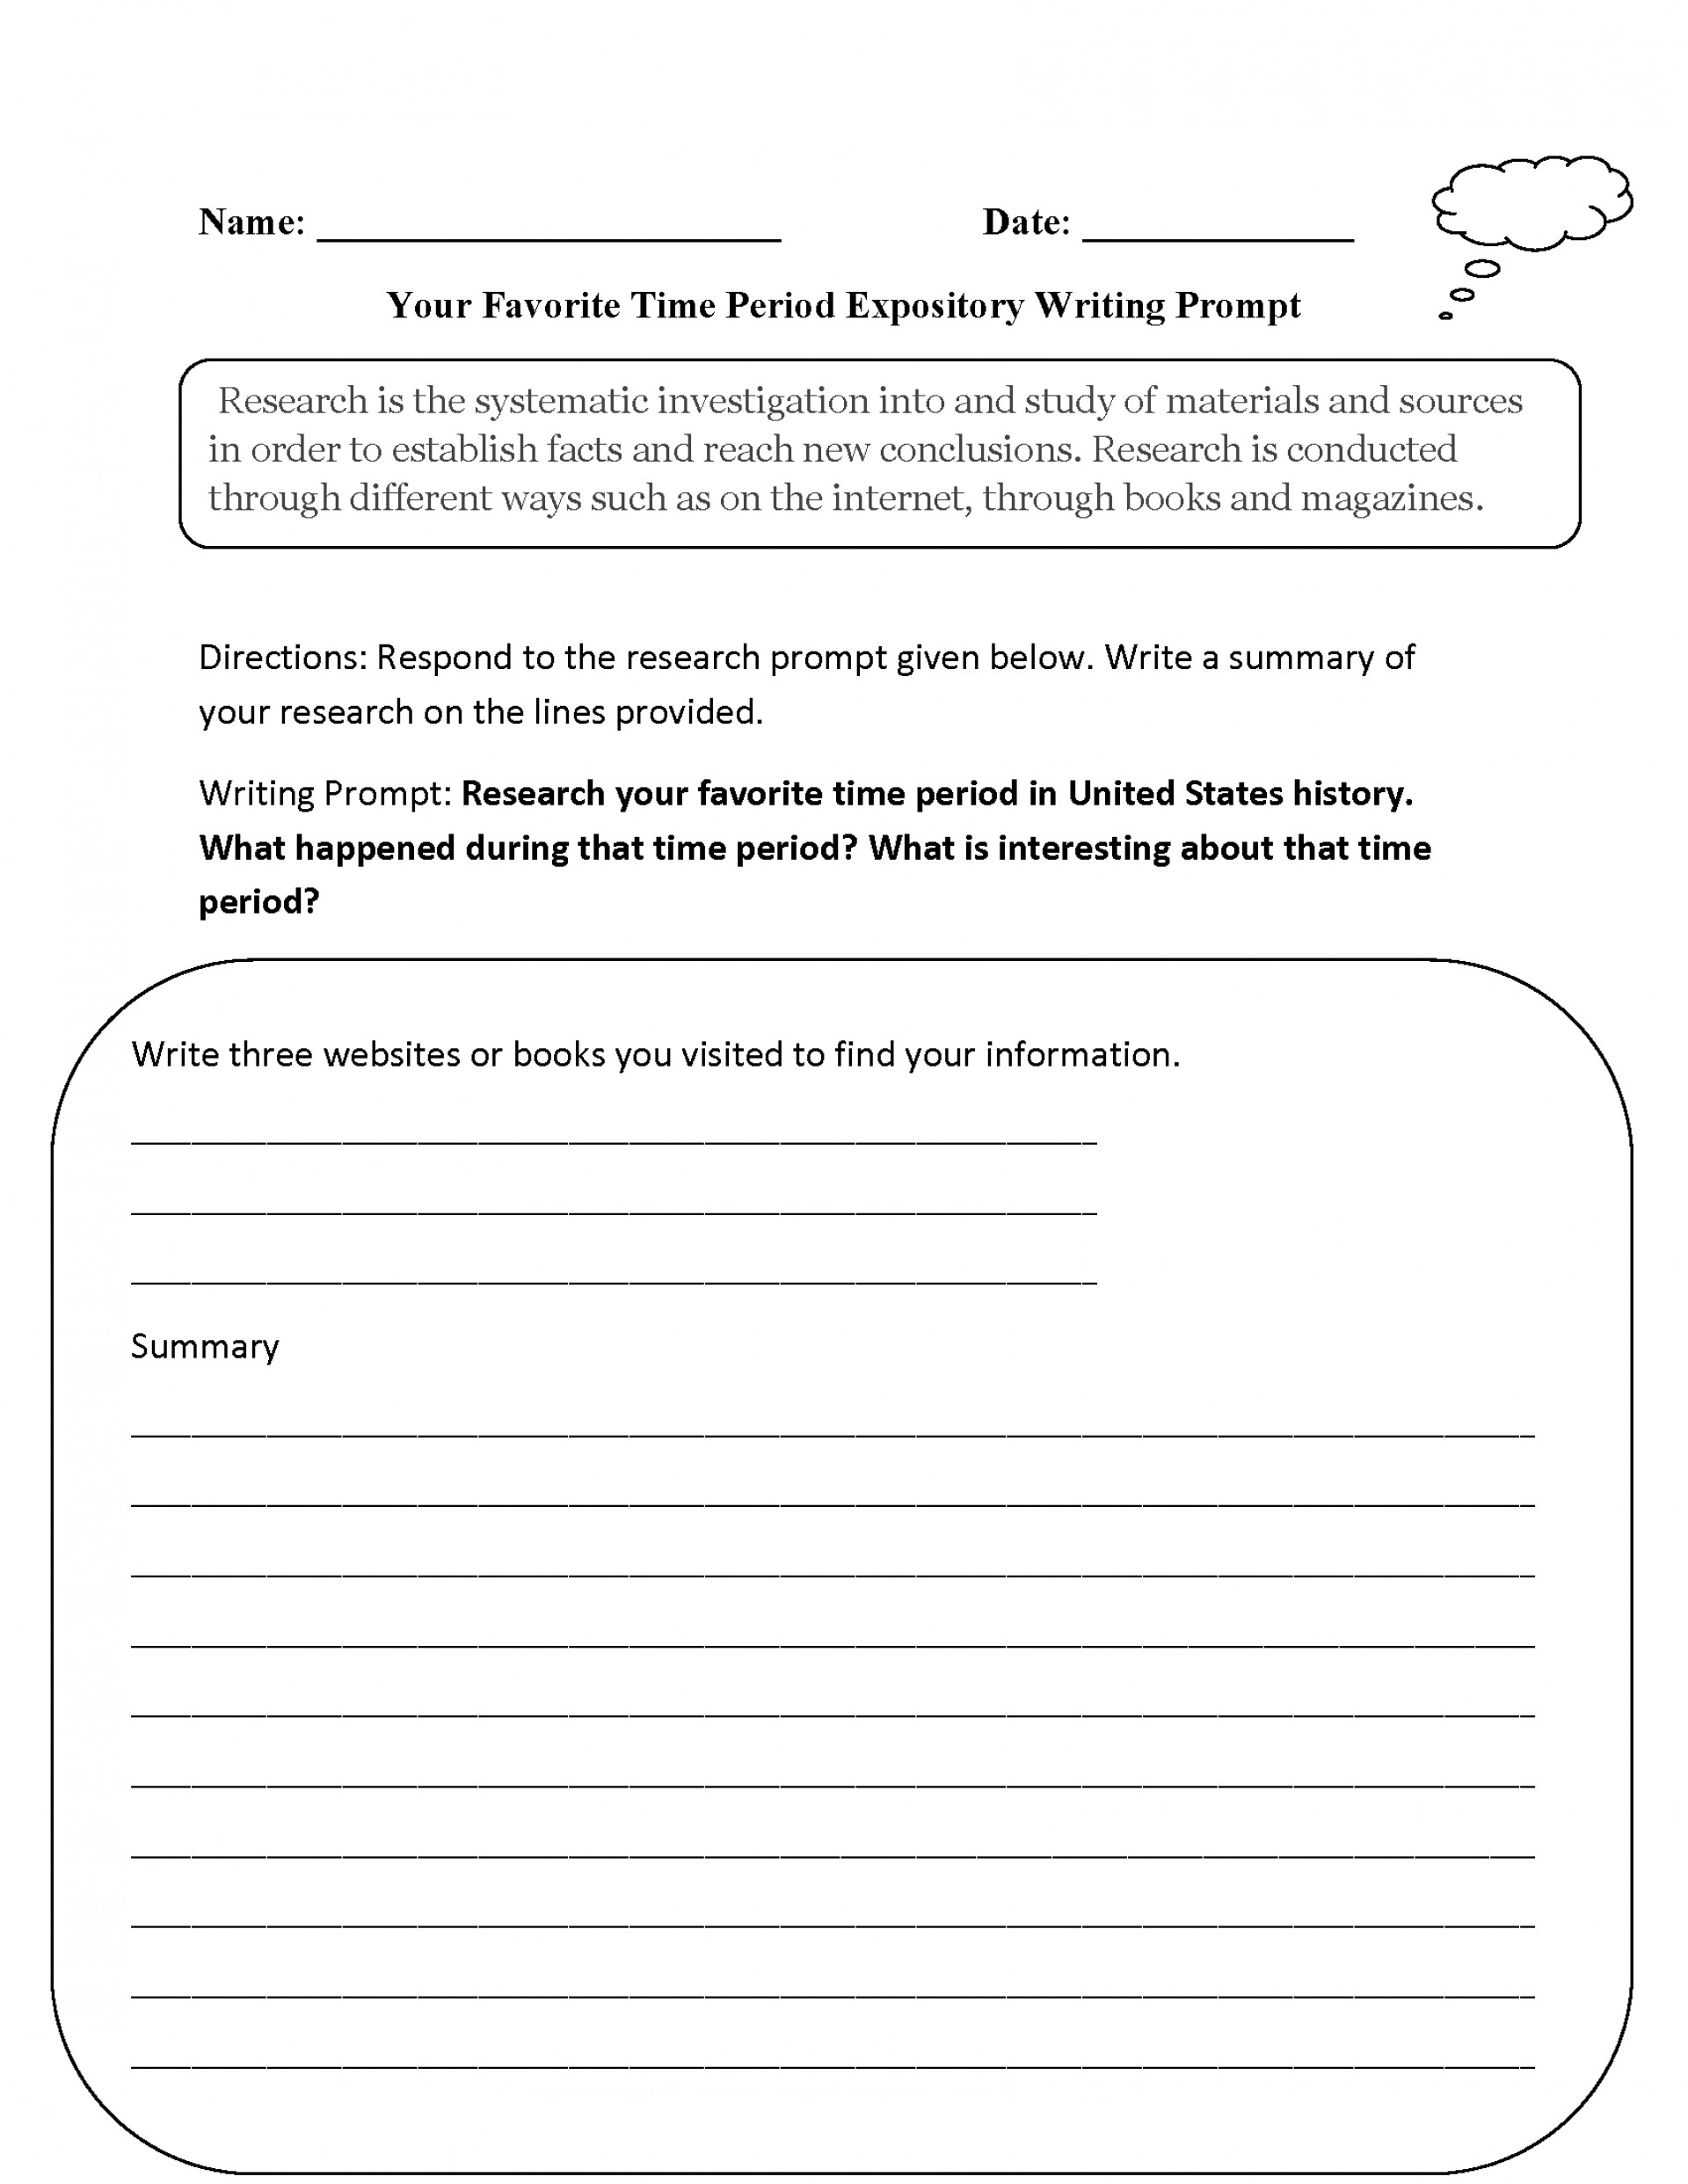 017 Informational Essay Prompts Informative Writing For College Students Favorite Time Period Expository P Elementary High School Middle 6th Grade 9th 5th Adults Unforgettable Rubric 4th Outline Explanatory Definition 1920